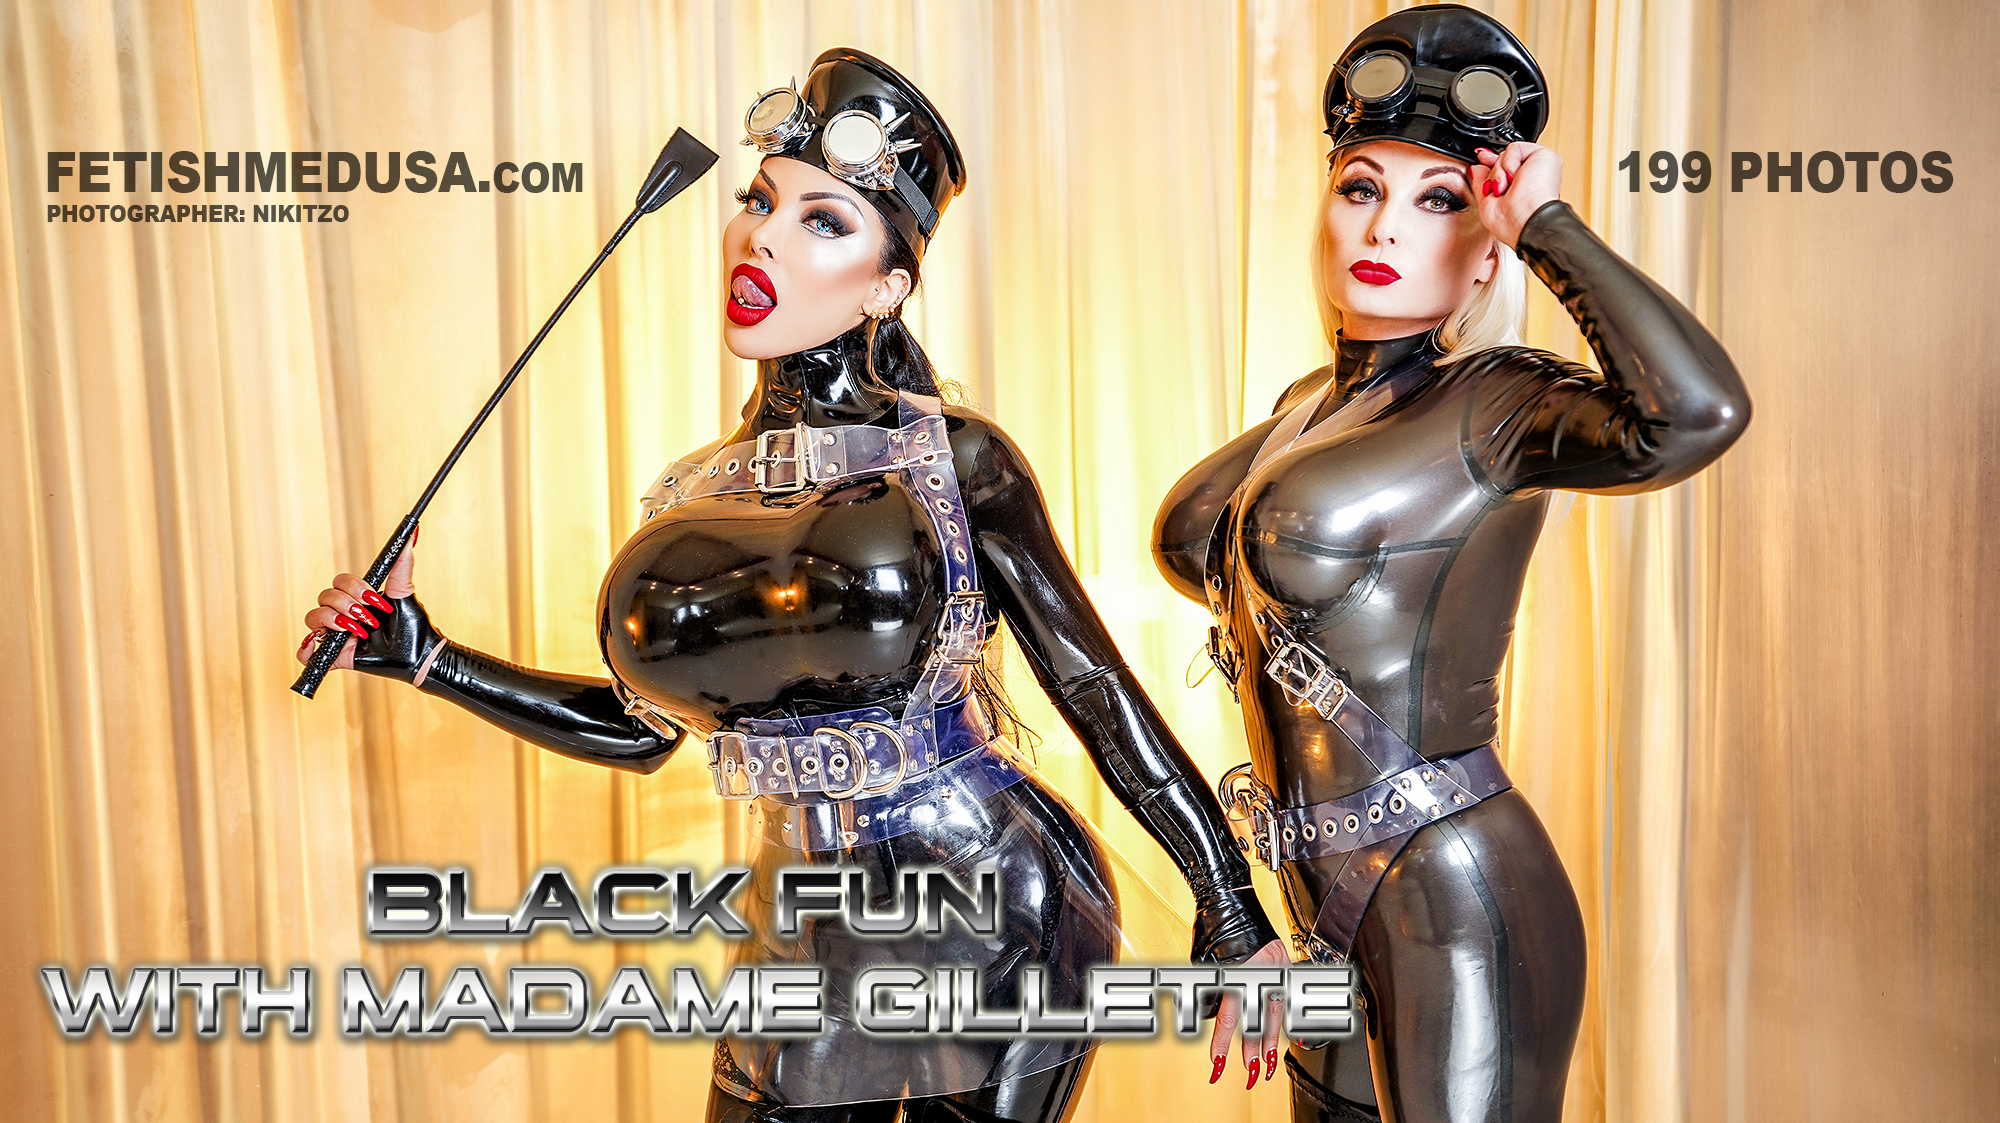 Black Fun with Madame Gillette